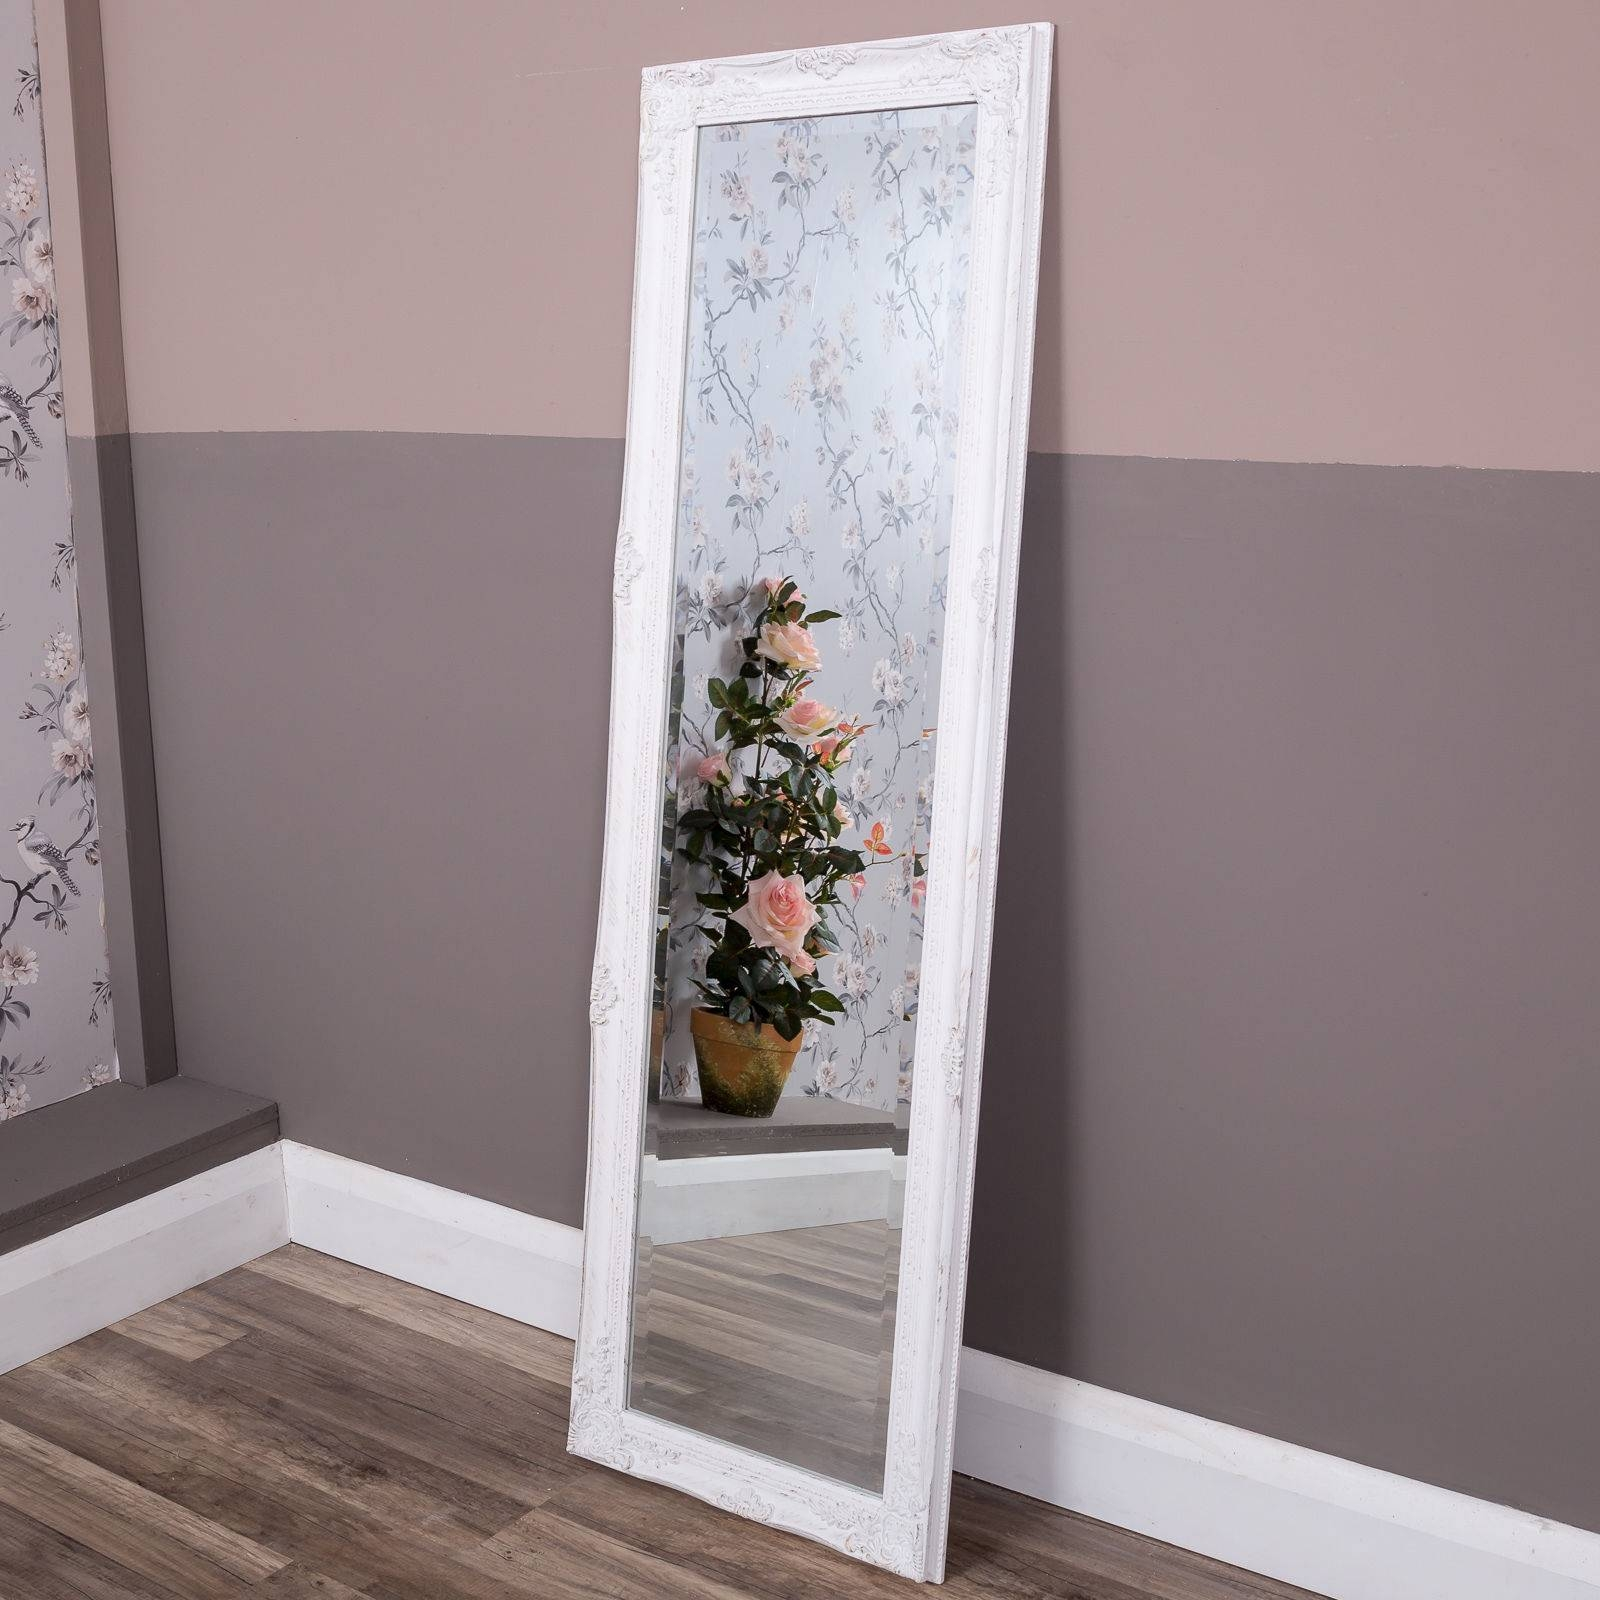 Full-Length Free Standing Mirrors | Ebay pertaining to Shabby Chic Long Mirrors (Image 3 of 15)